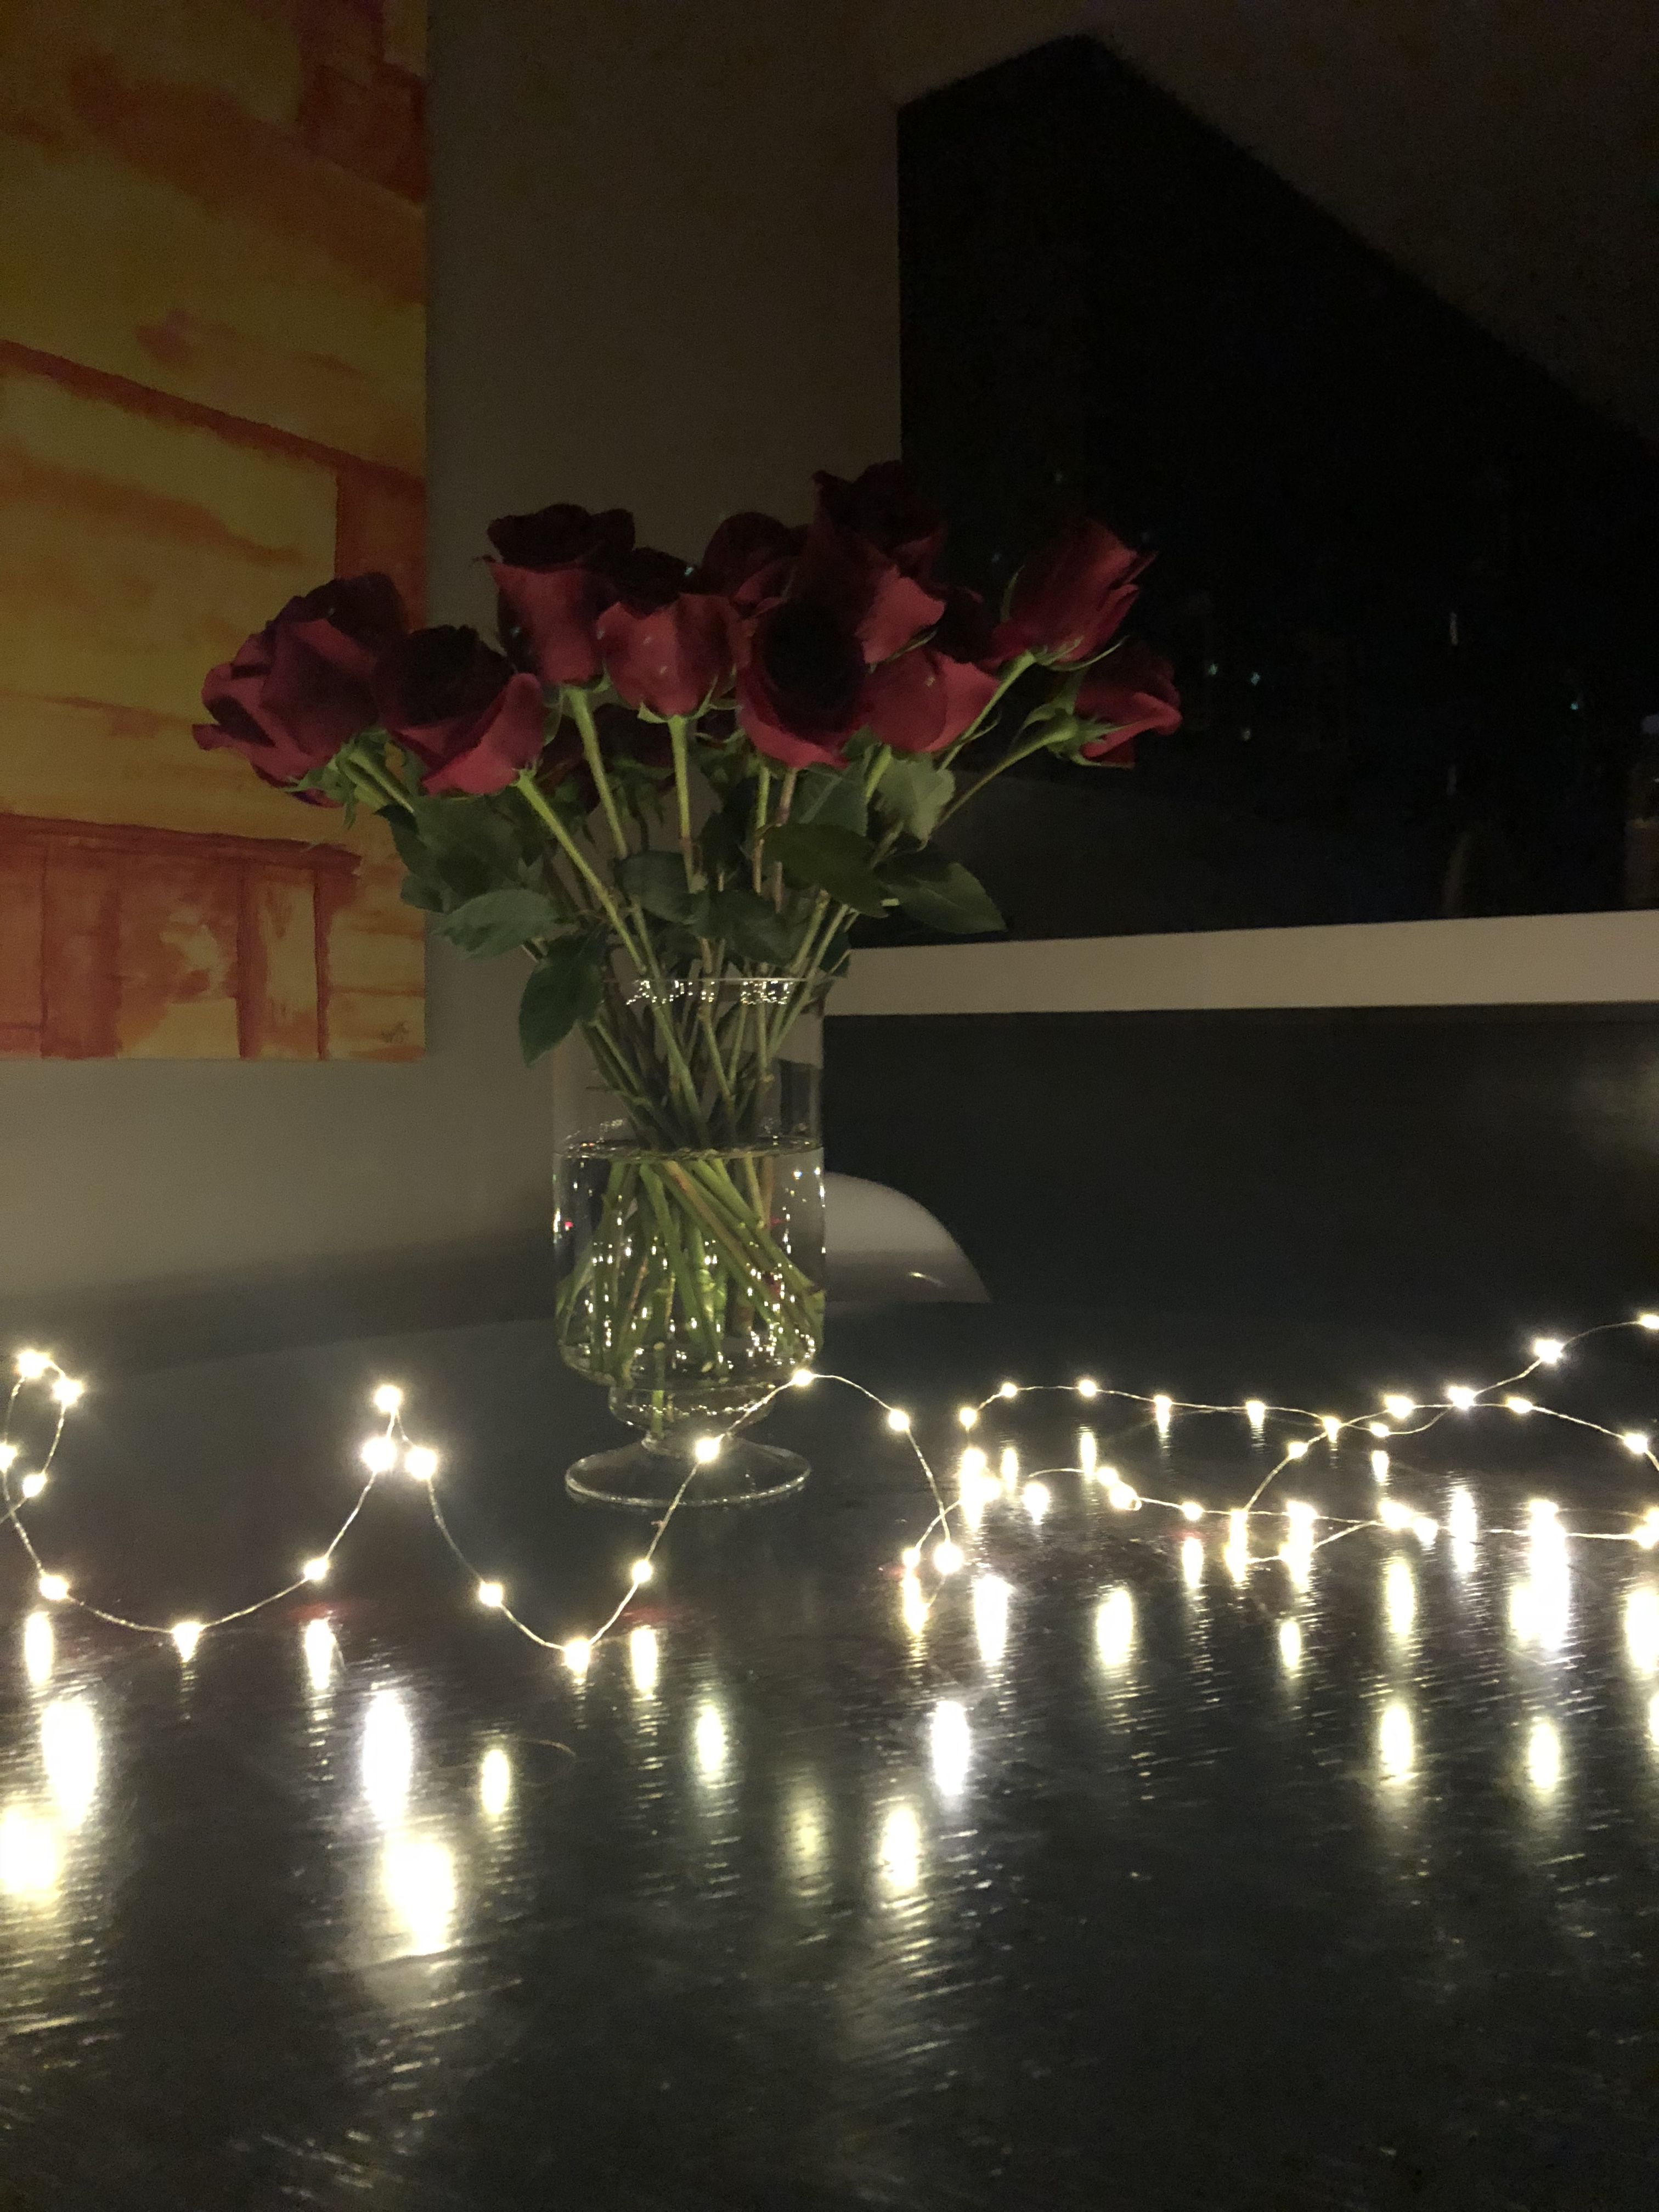 The Romantic Hotel Room Decoration With Real Rose Petals Candles And Flowers We Also Serv Romantic Candles Bedroom Hotel Room Decoration Romantic Hotel Rooms